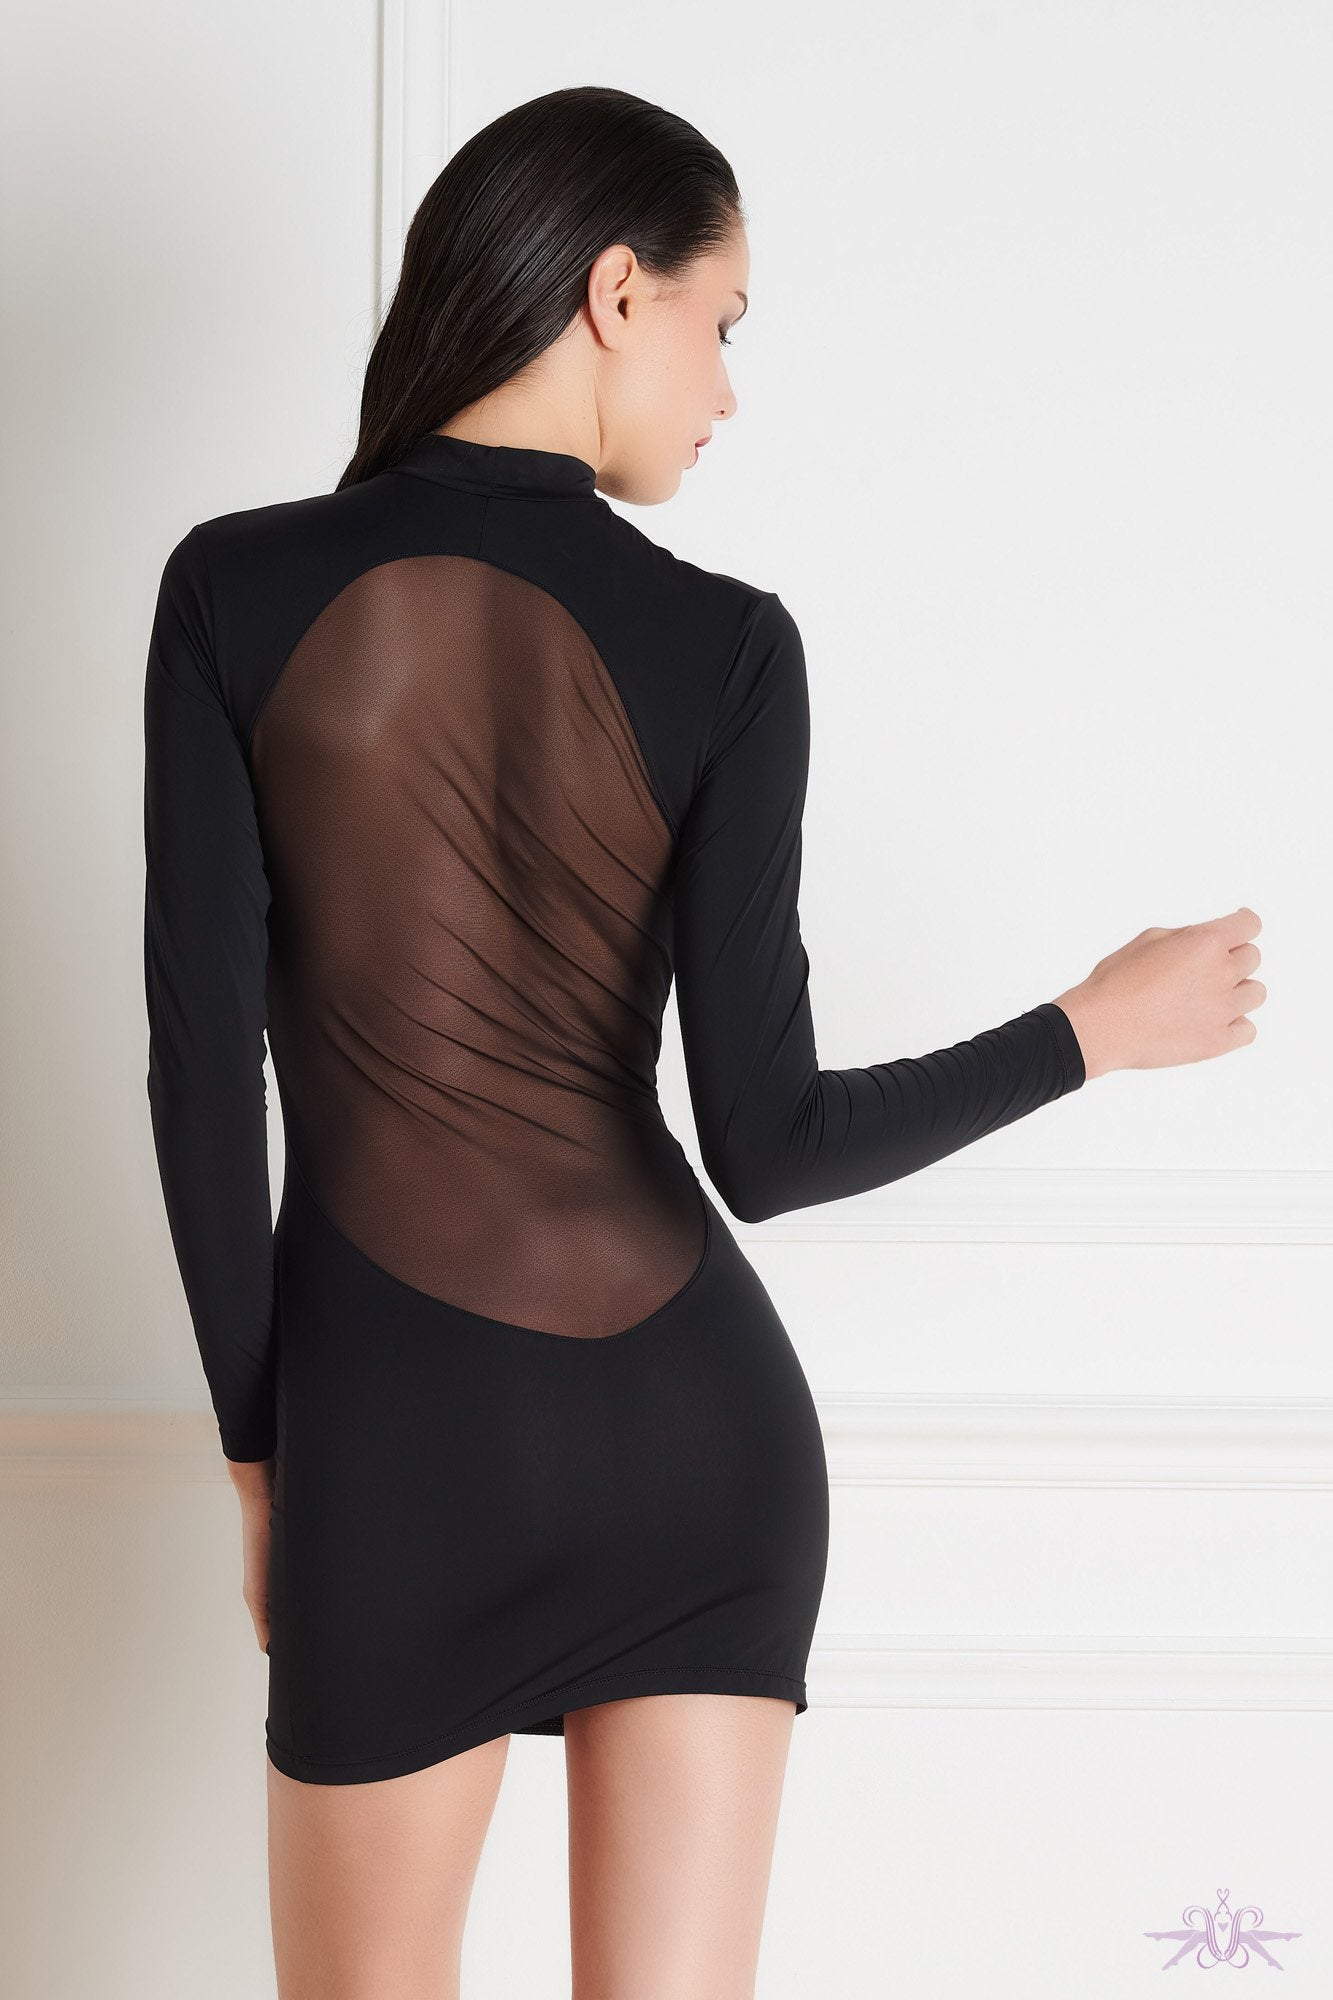 Maison Close Pure Tentation Long Sleeved Dress - The Hosiery Box